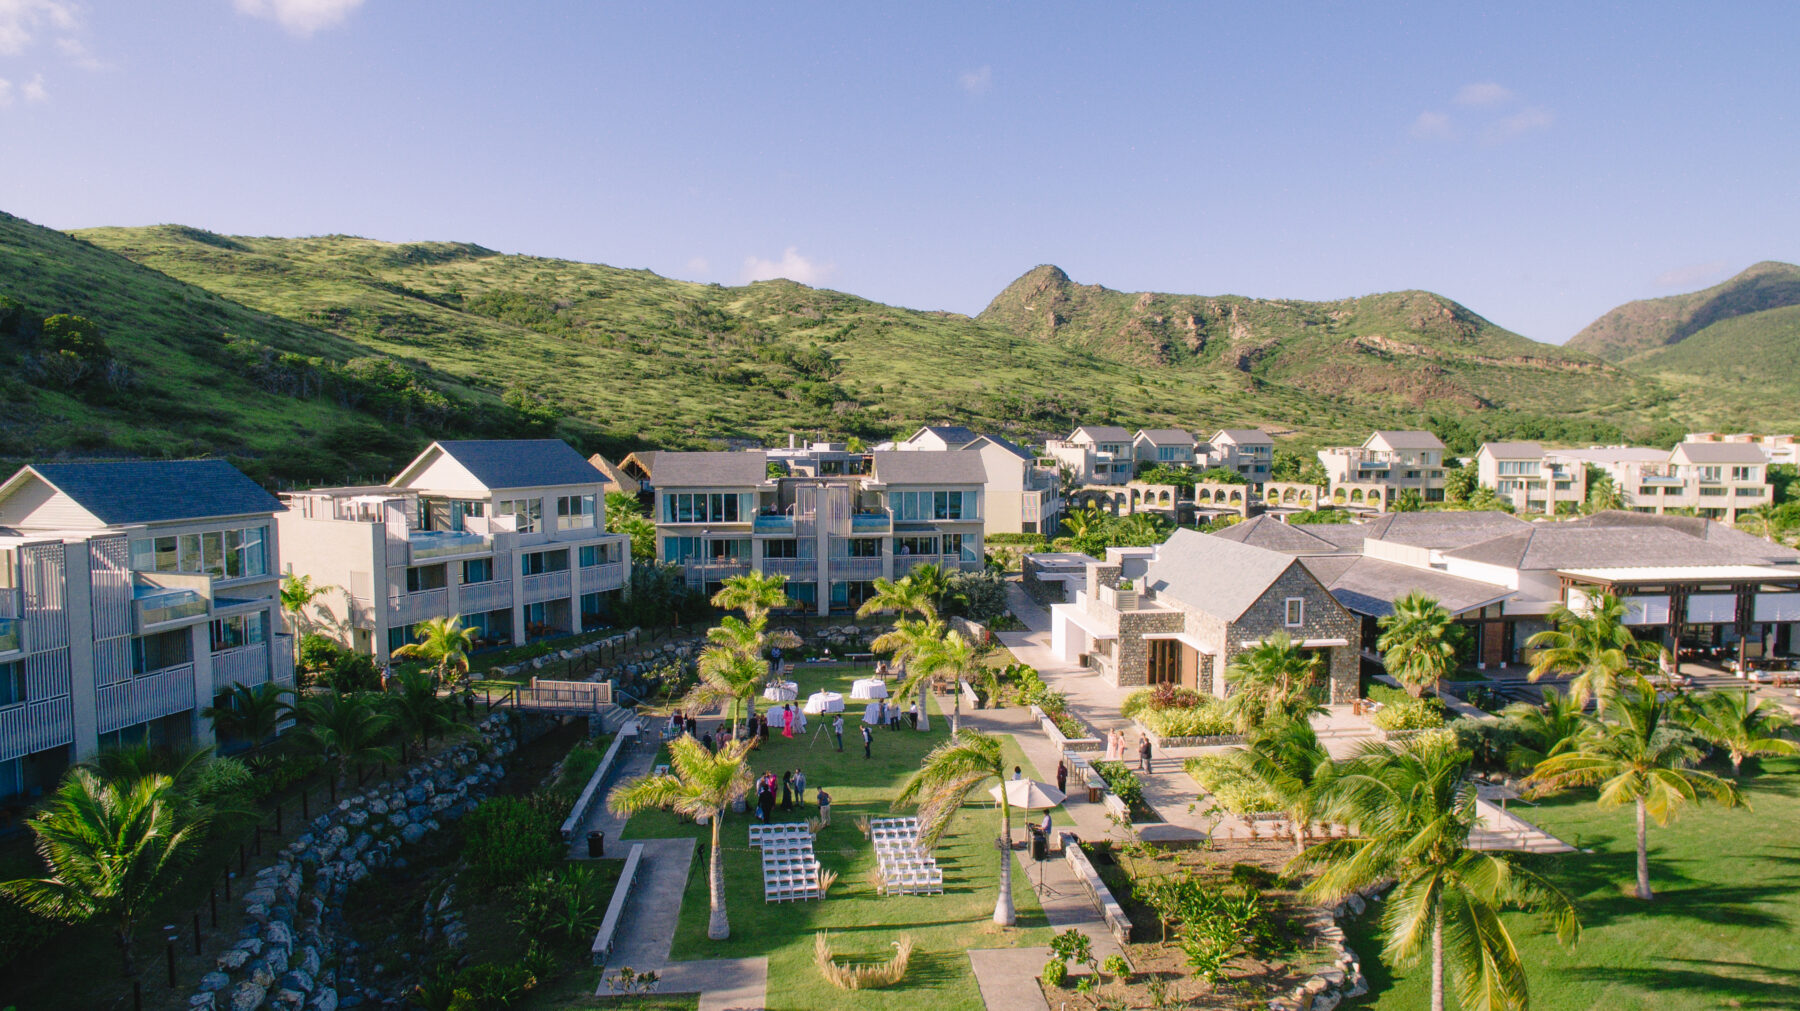 Park Hyatt St. Kitts Resort Wedding: Intimate Caribbean Wedding by Details Nashville featured on Nashville Bride Guide